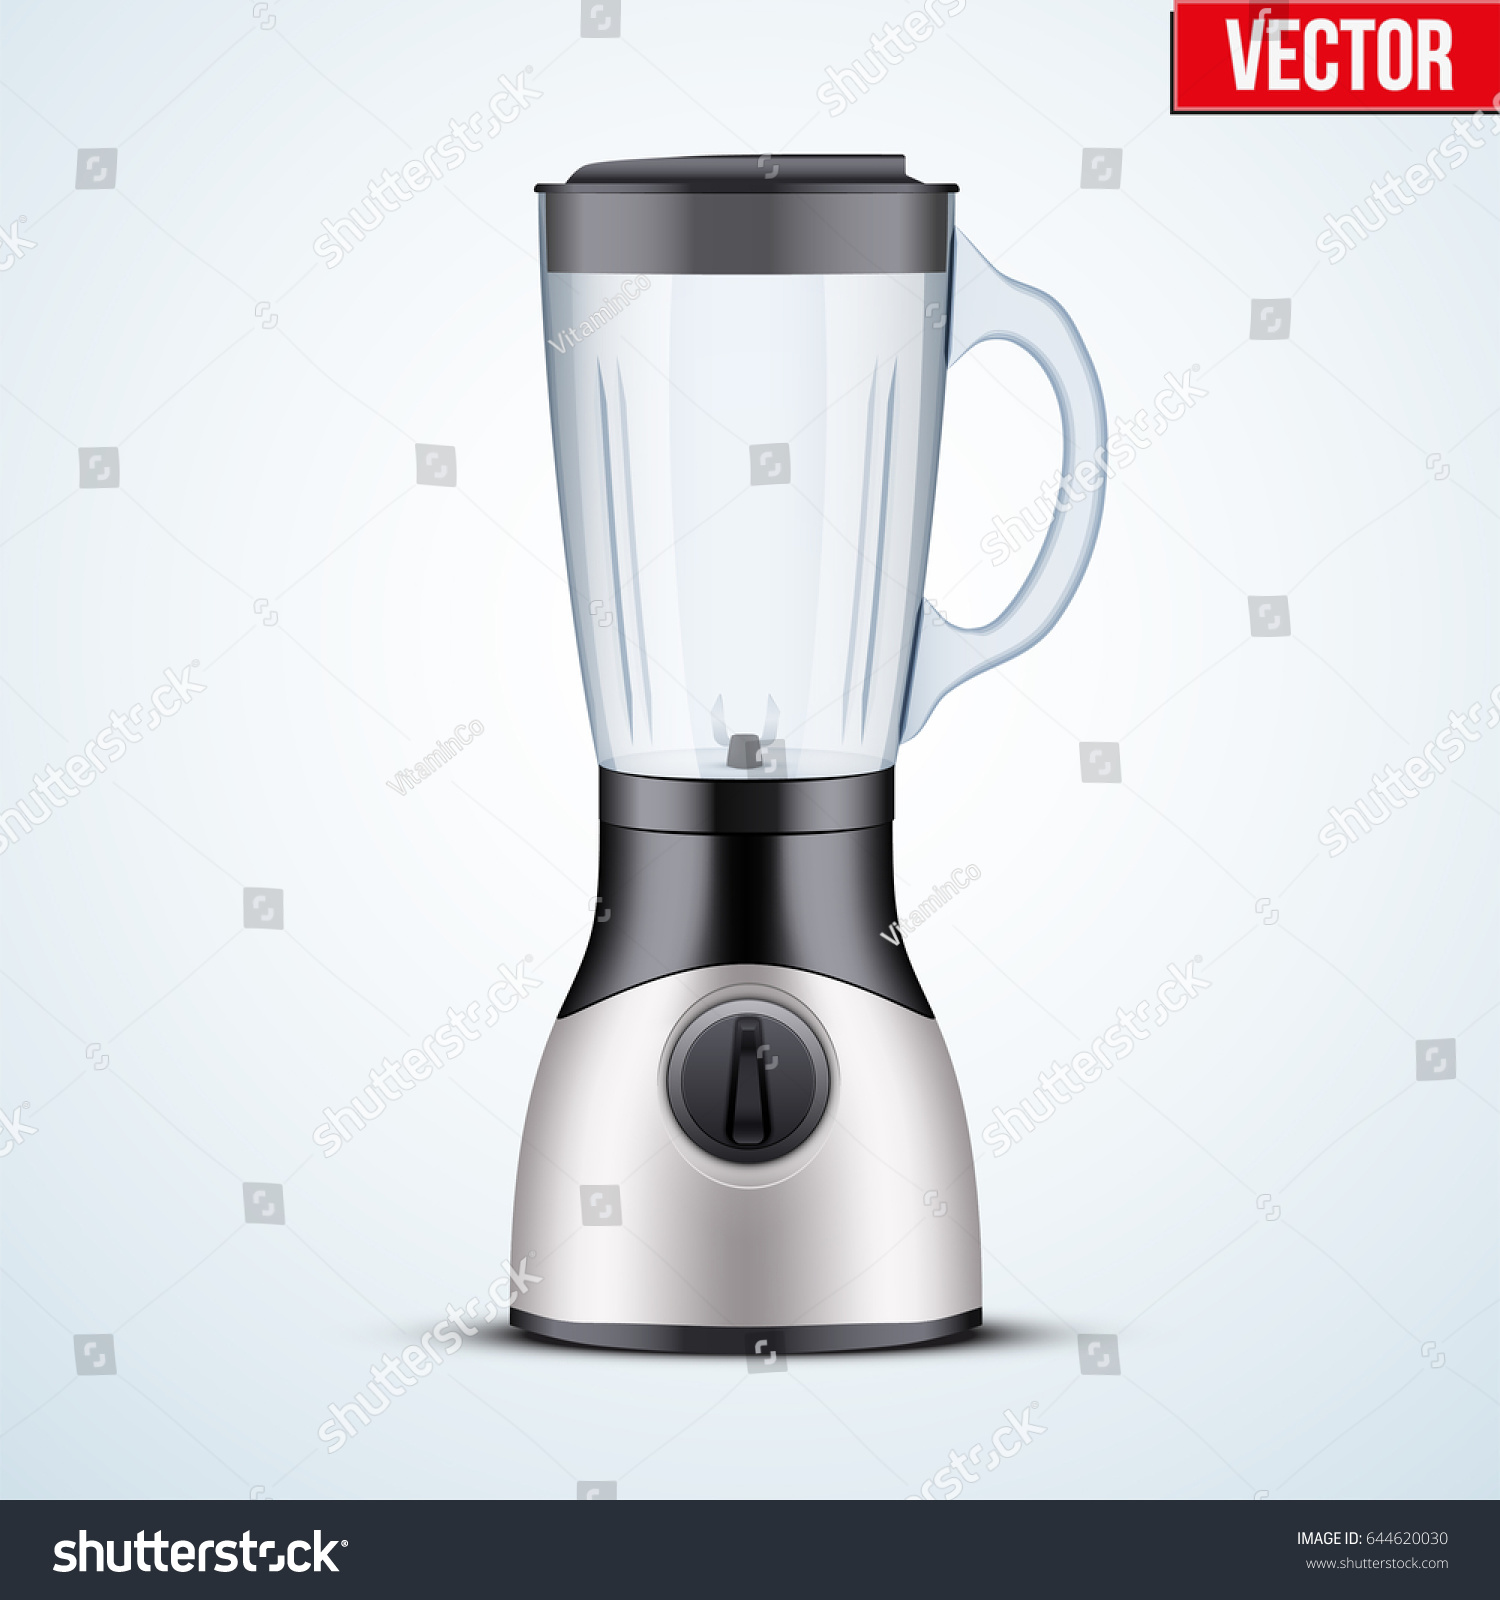 kitchen blender glass container electronic kitchen stock vector